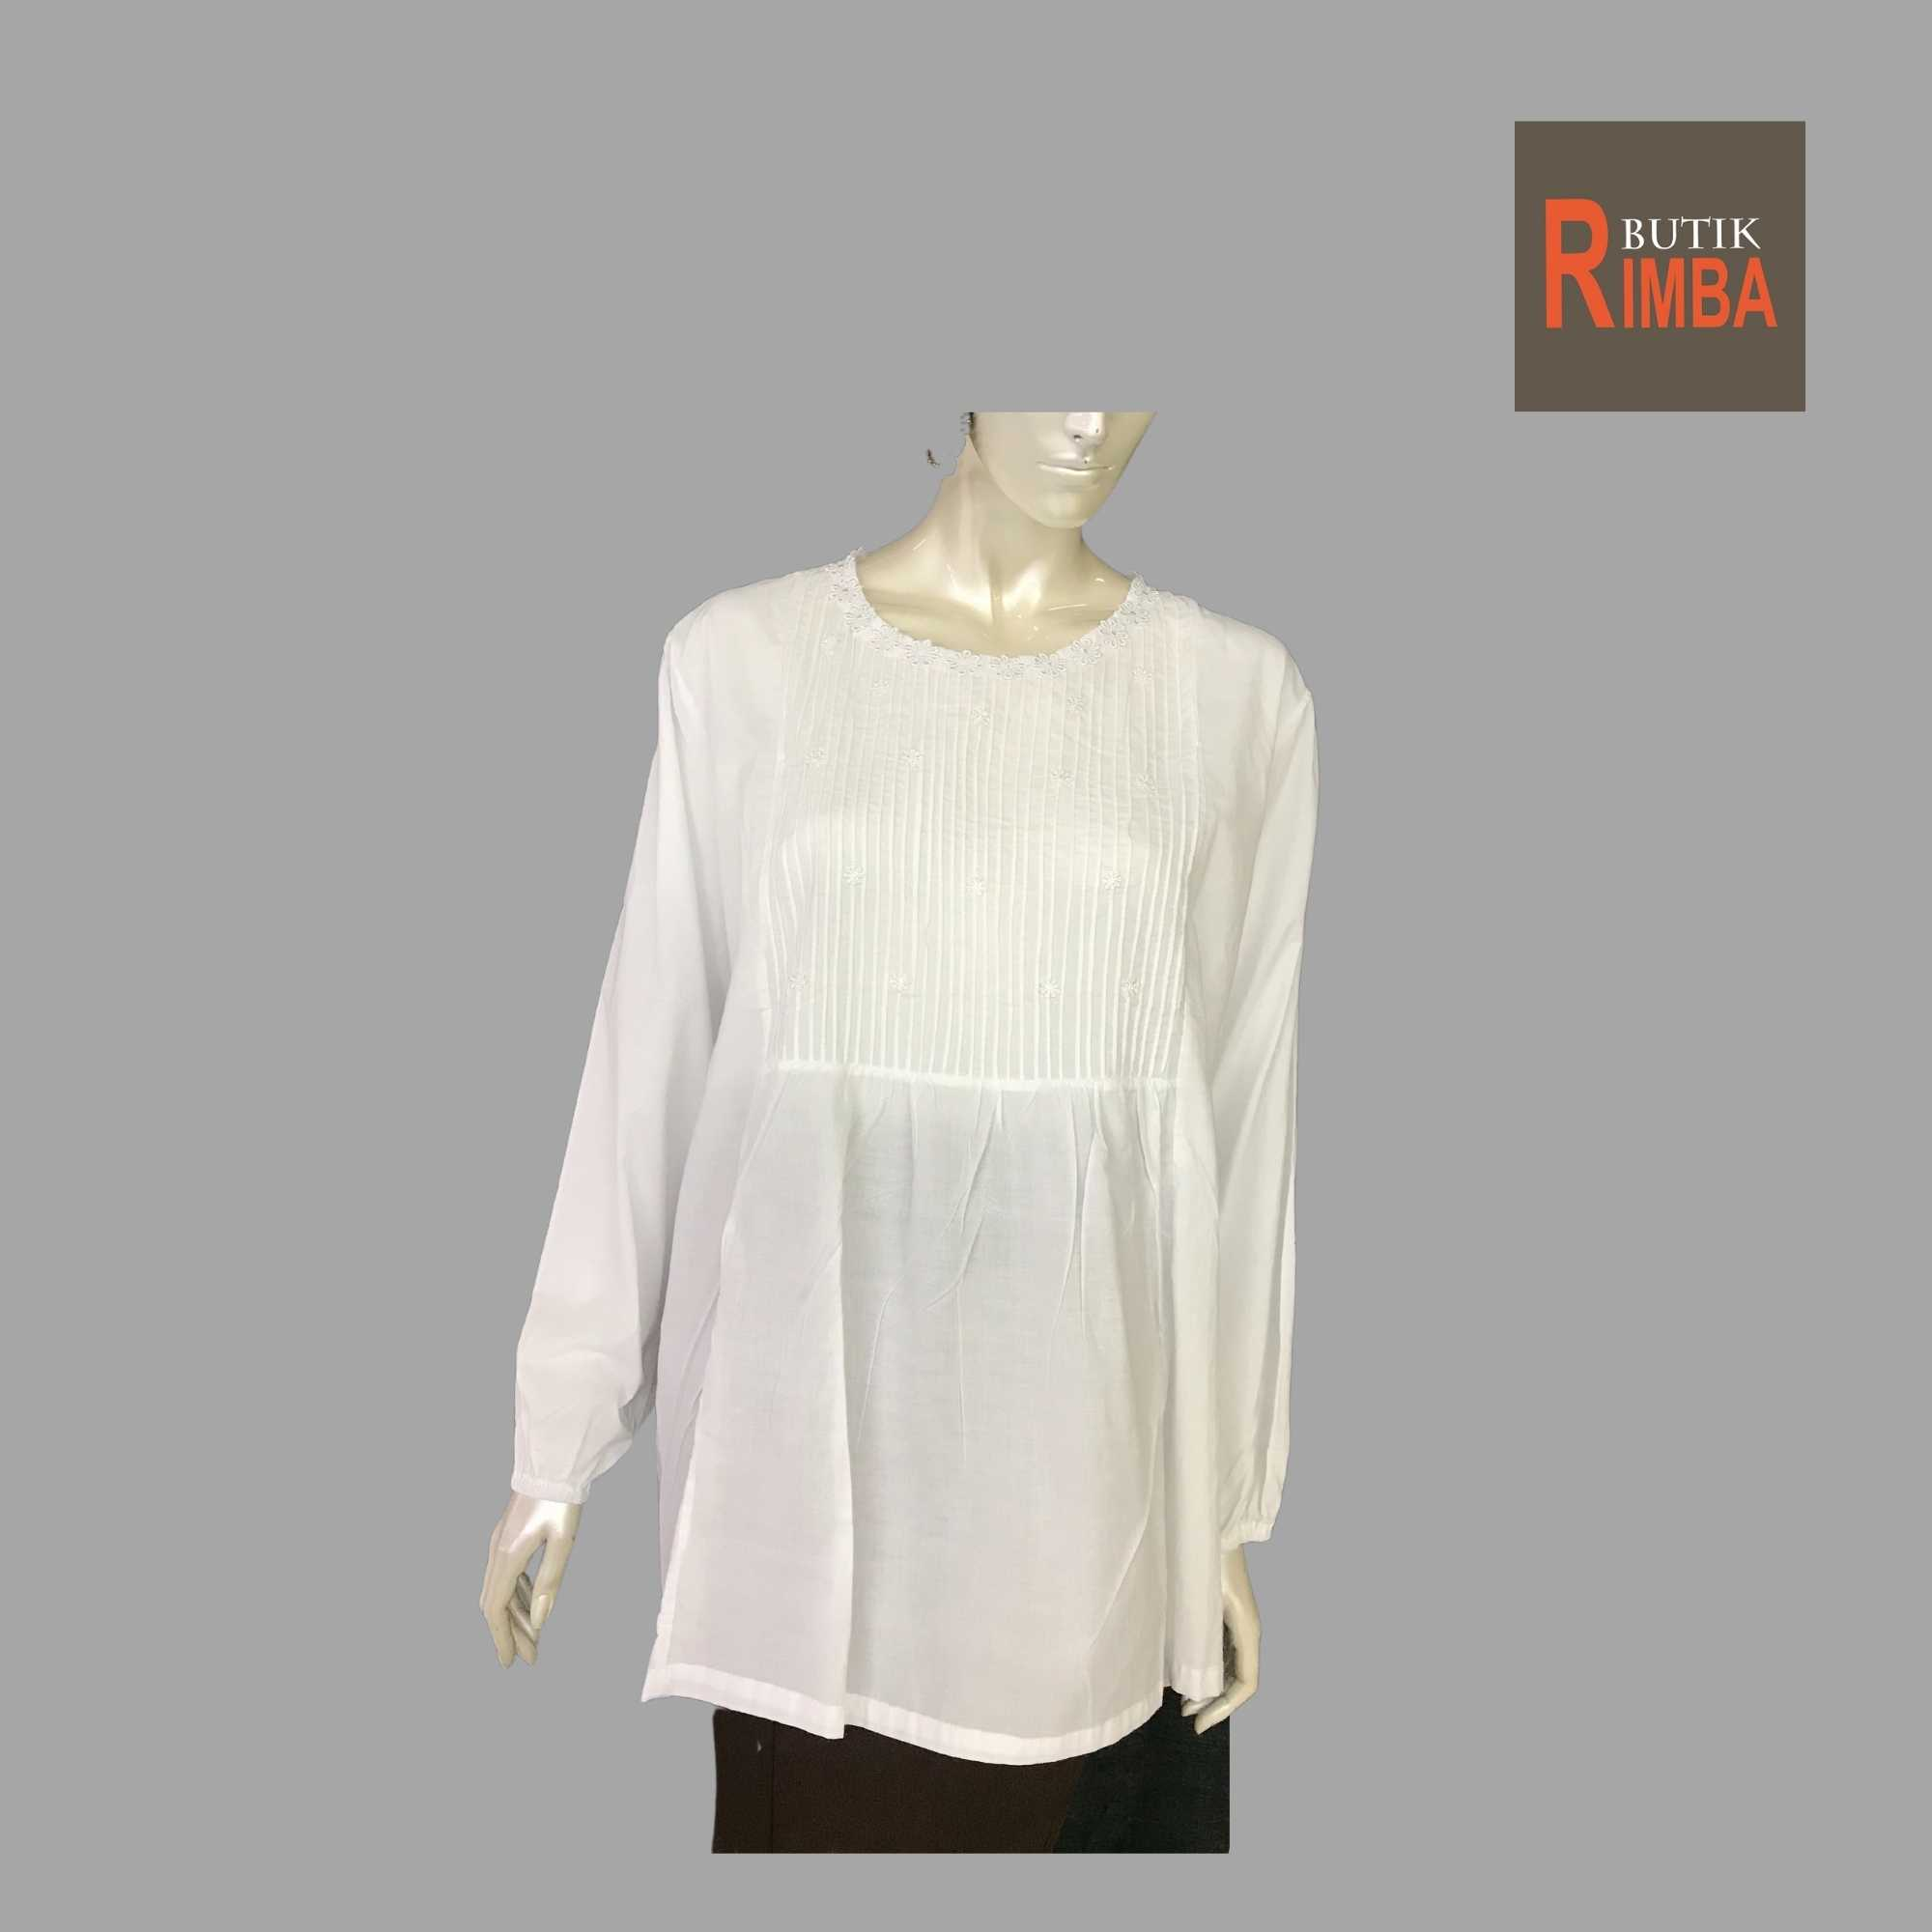 WOMEN CASUAL AND COMFORTABLE WHITE BLOUSE COTTON FREE SIZE PATTERN 05